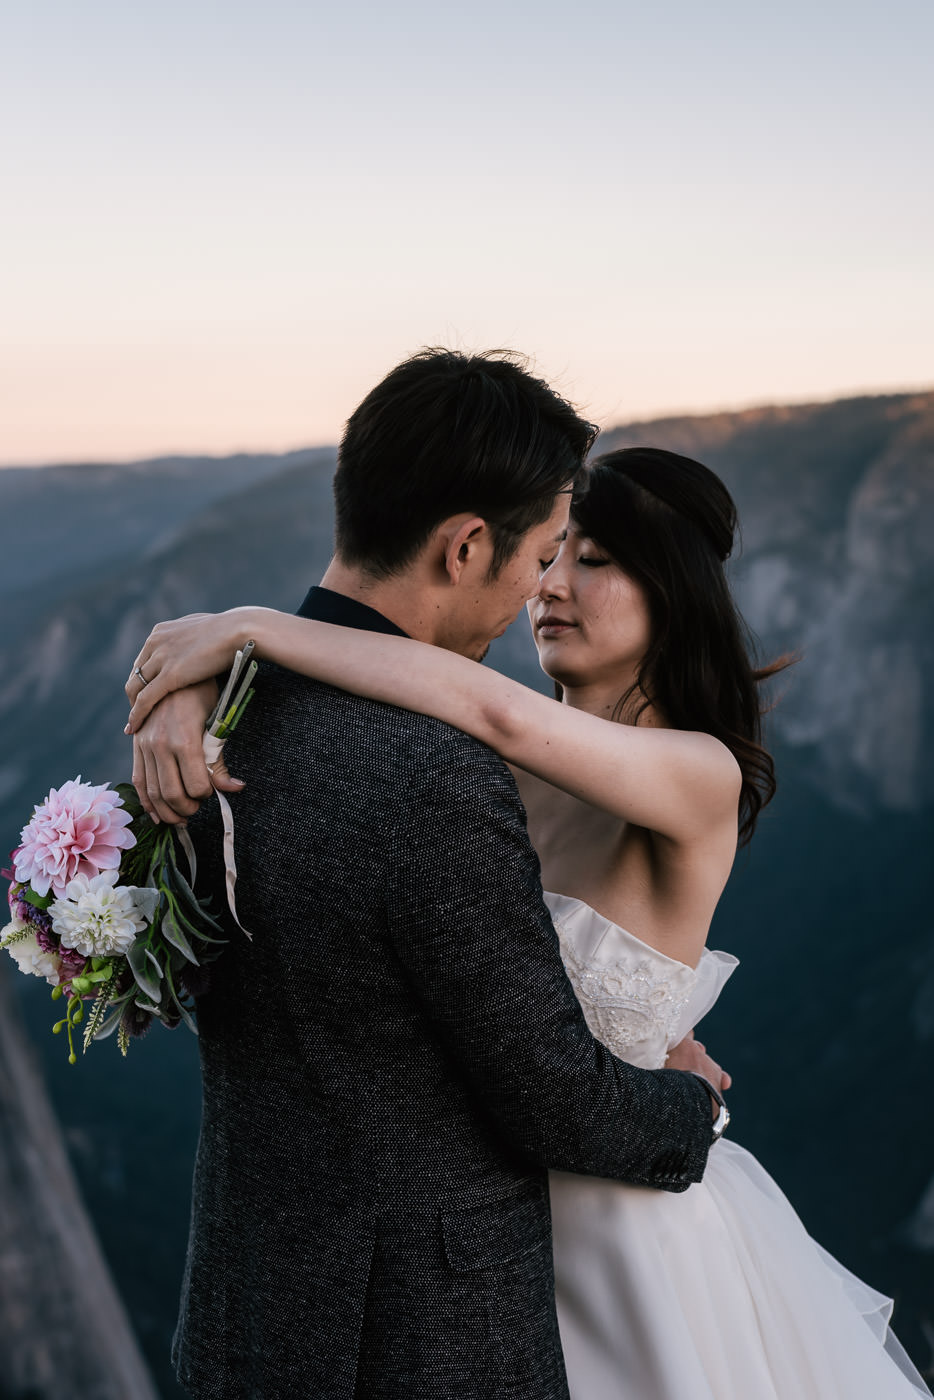 Intimate wedding photography for adventurous souls.